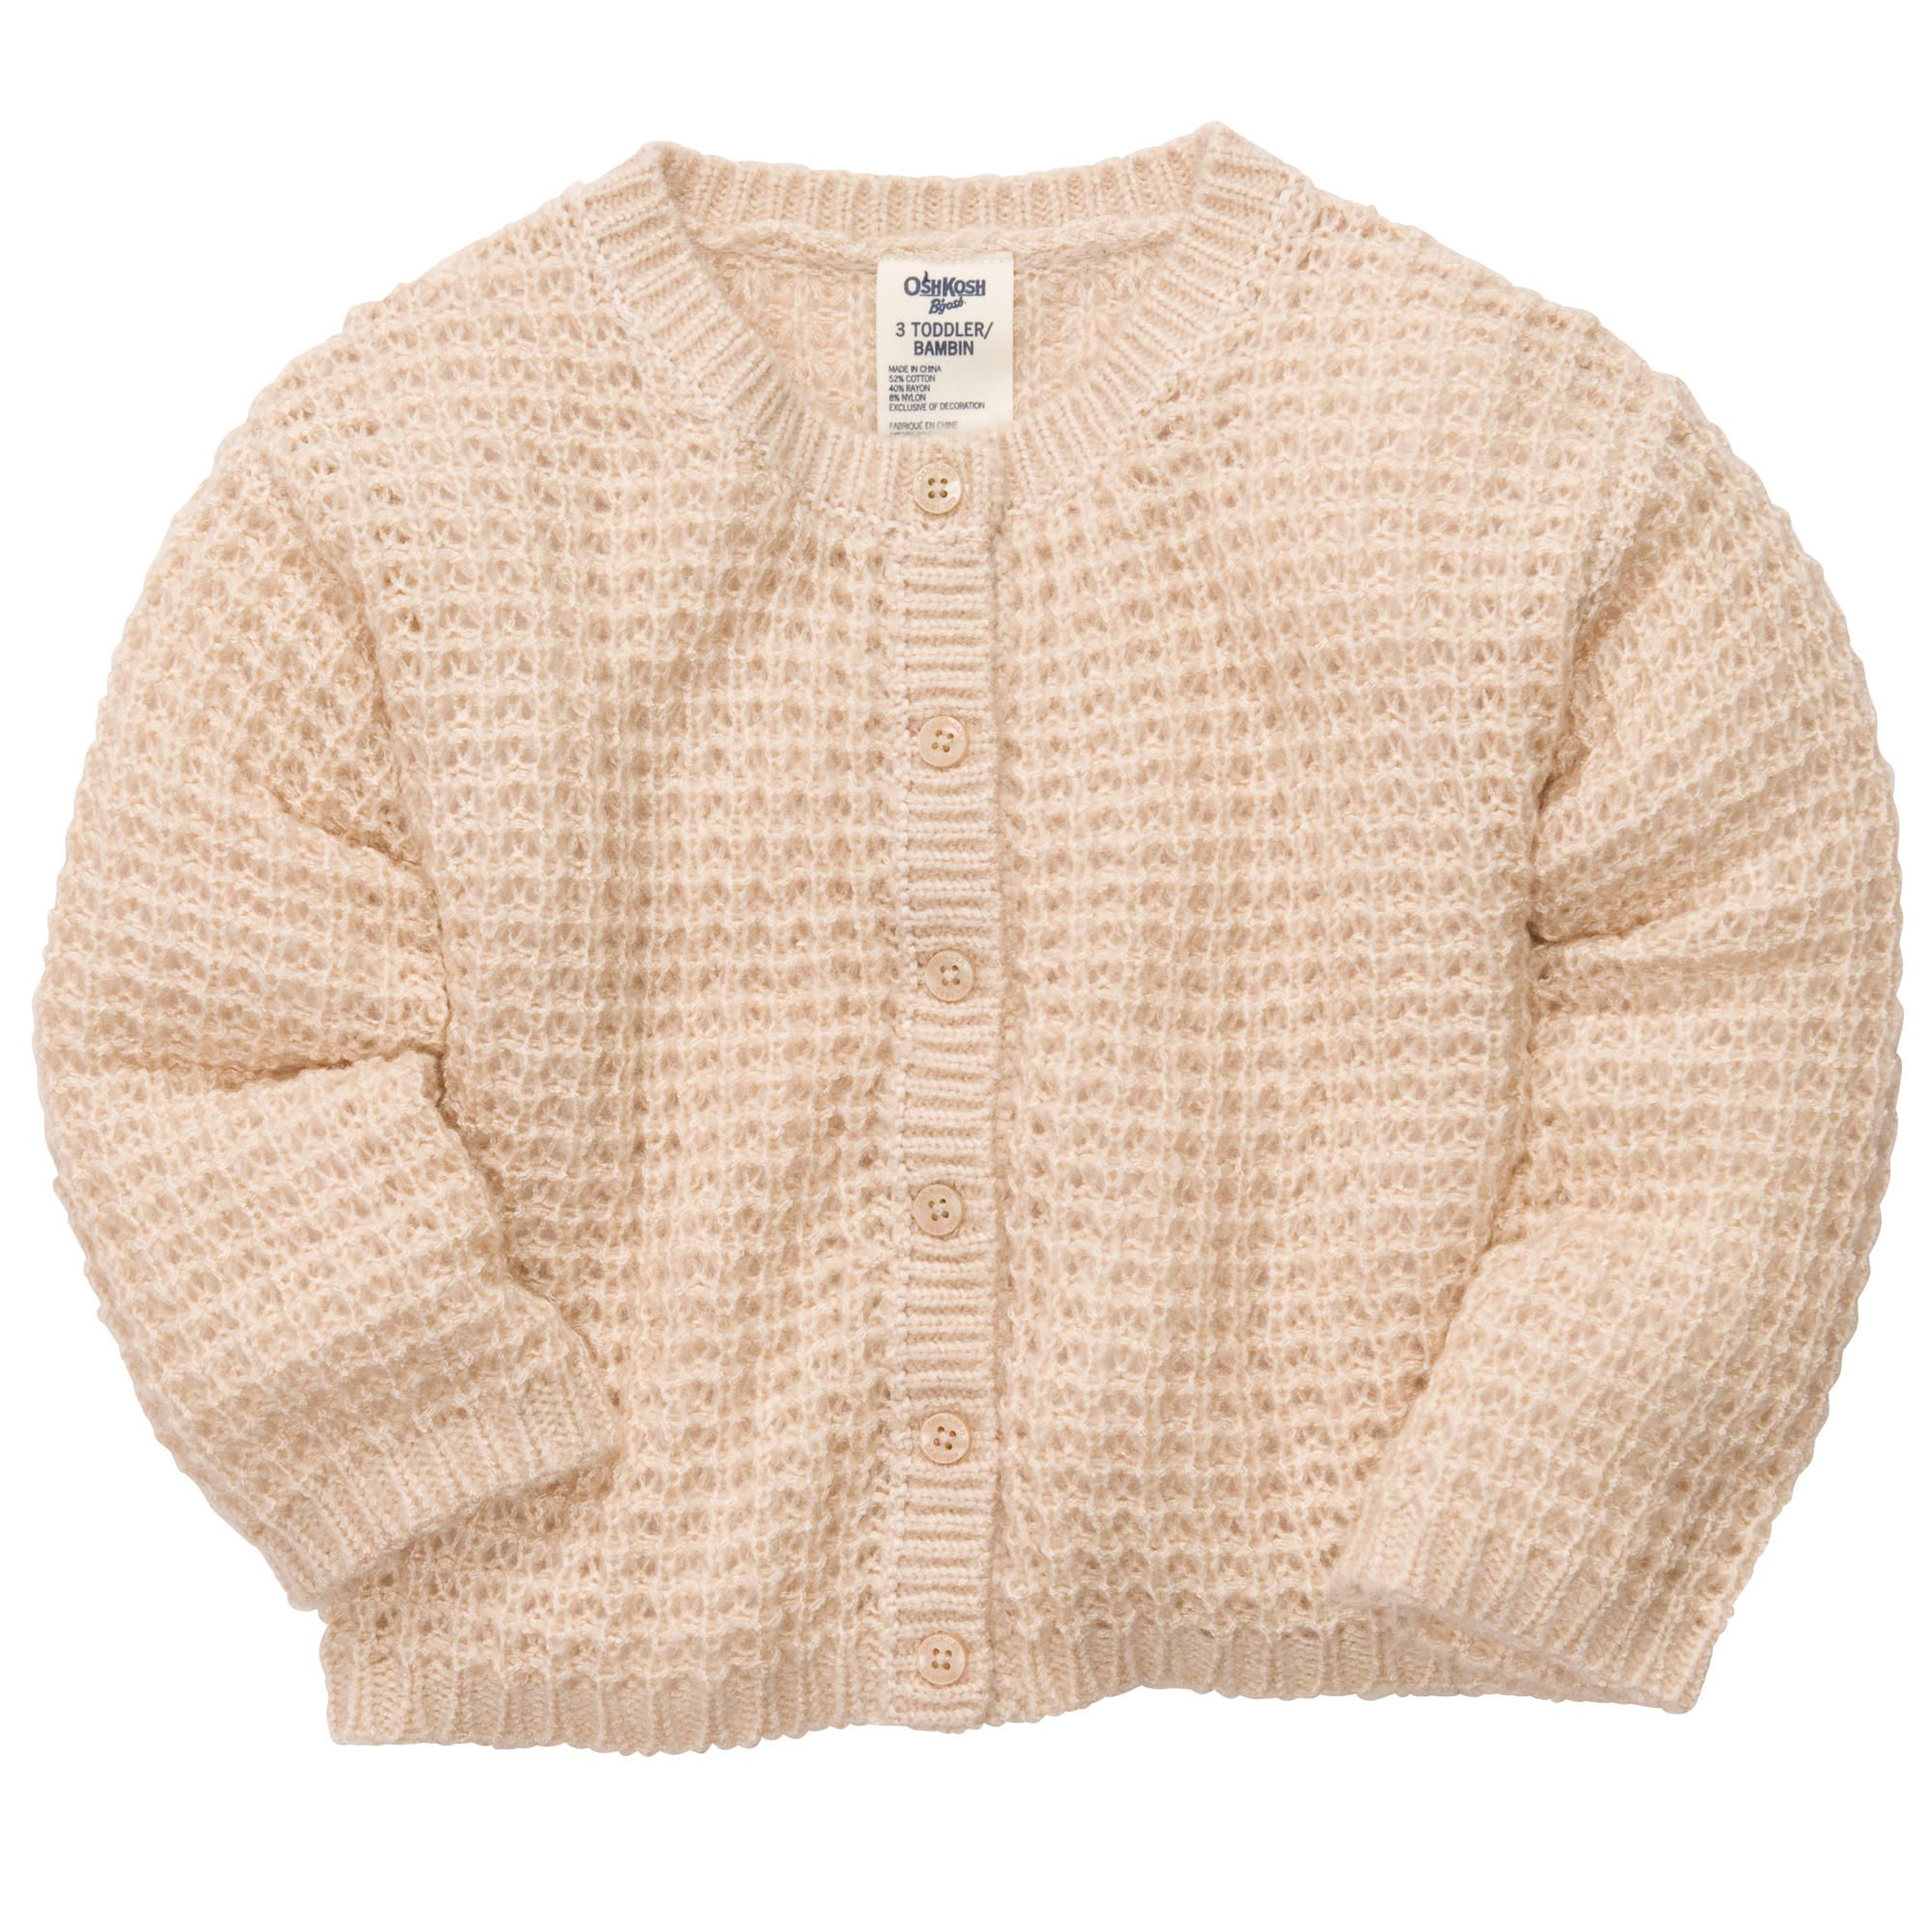 White OshKosh BGosh/© Toddler Girl Knit Cardigan Sweater